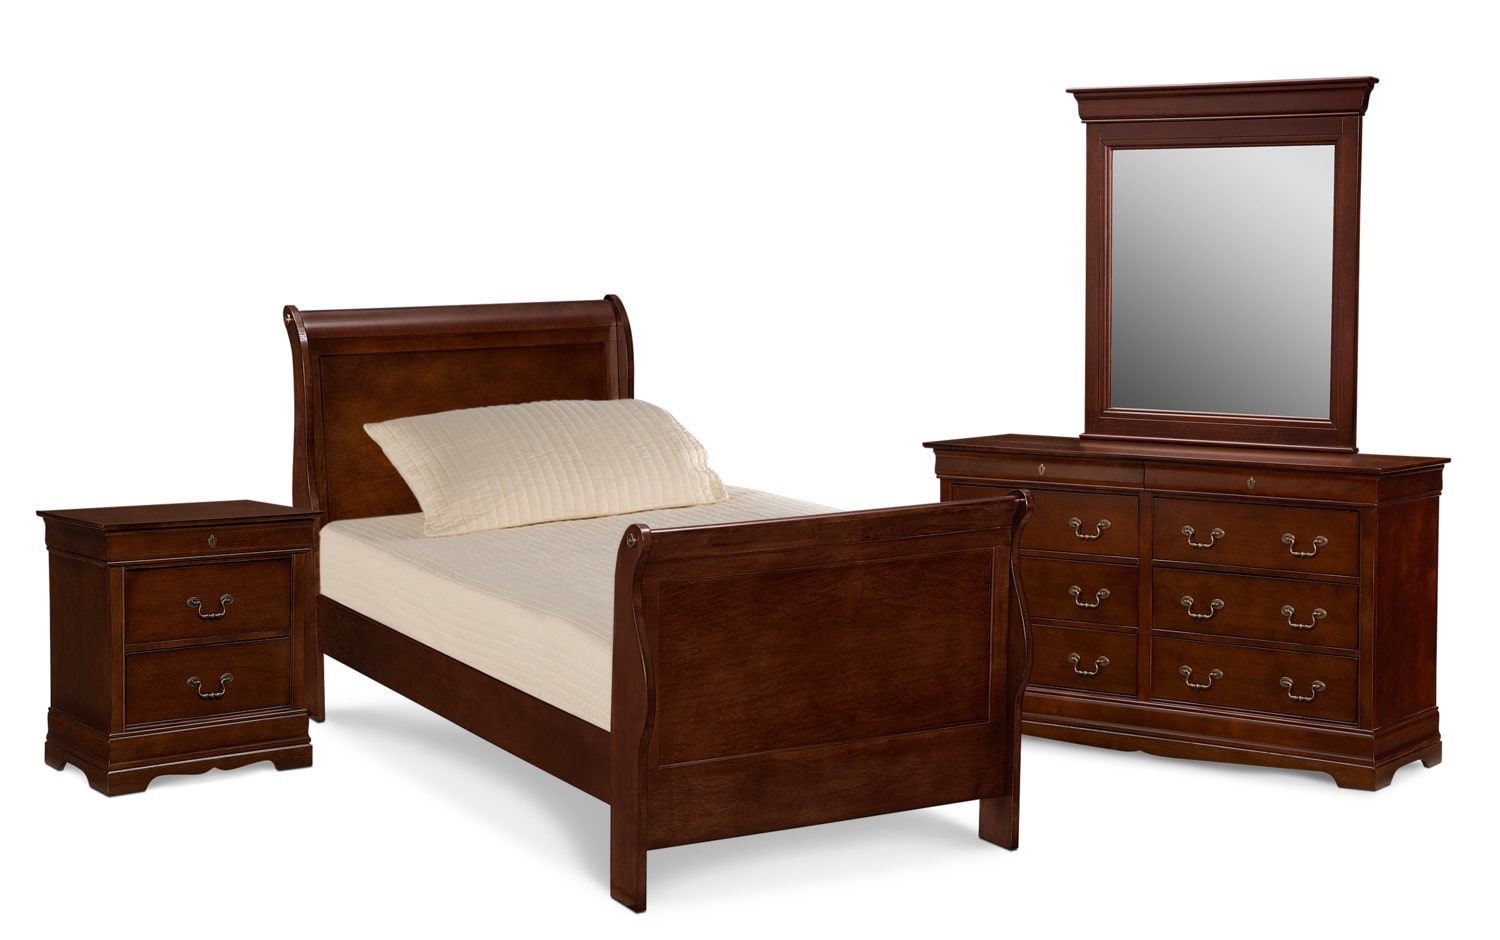 Bedroom Furniture - Neo Classic Youth 6-Piece Bedroom Set with Nightstand, Dresser and Mirror